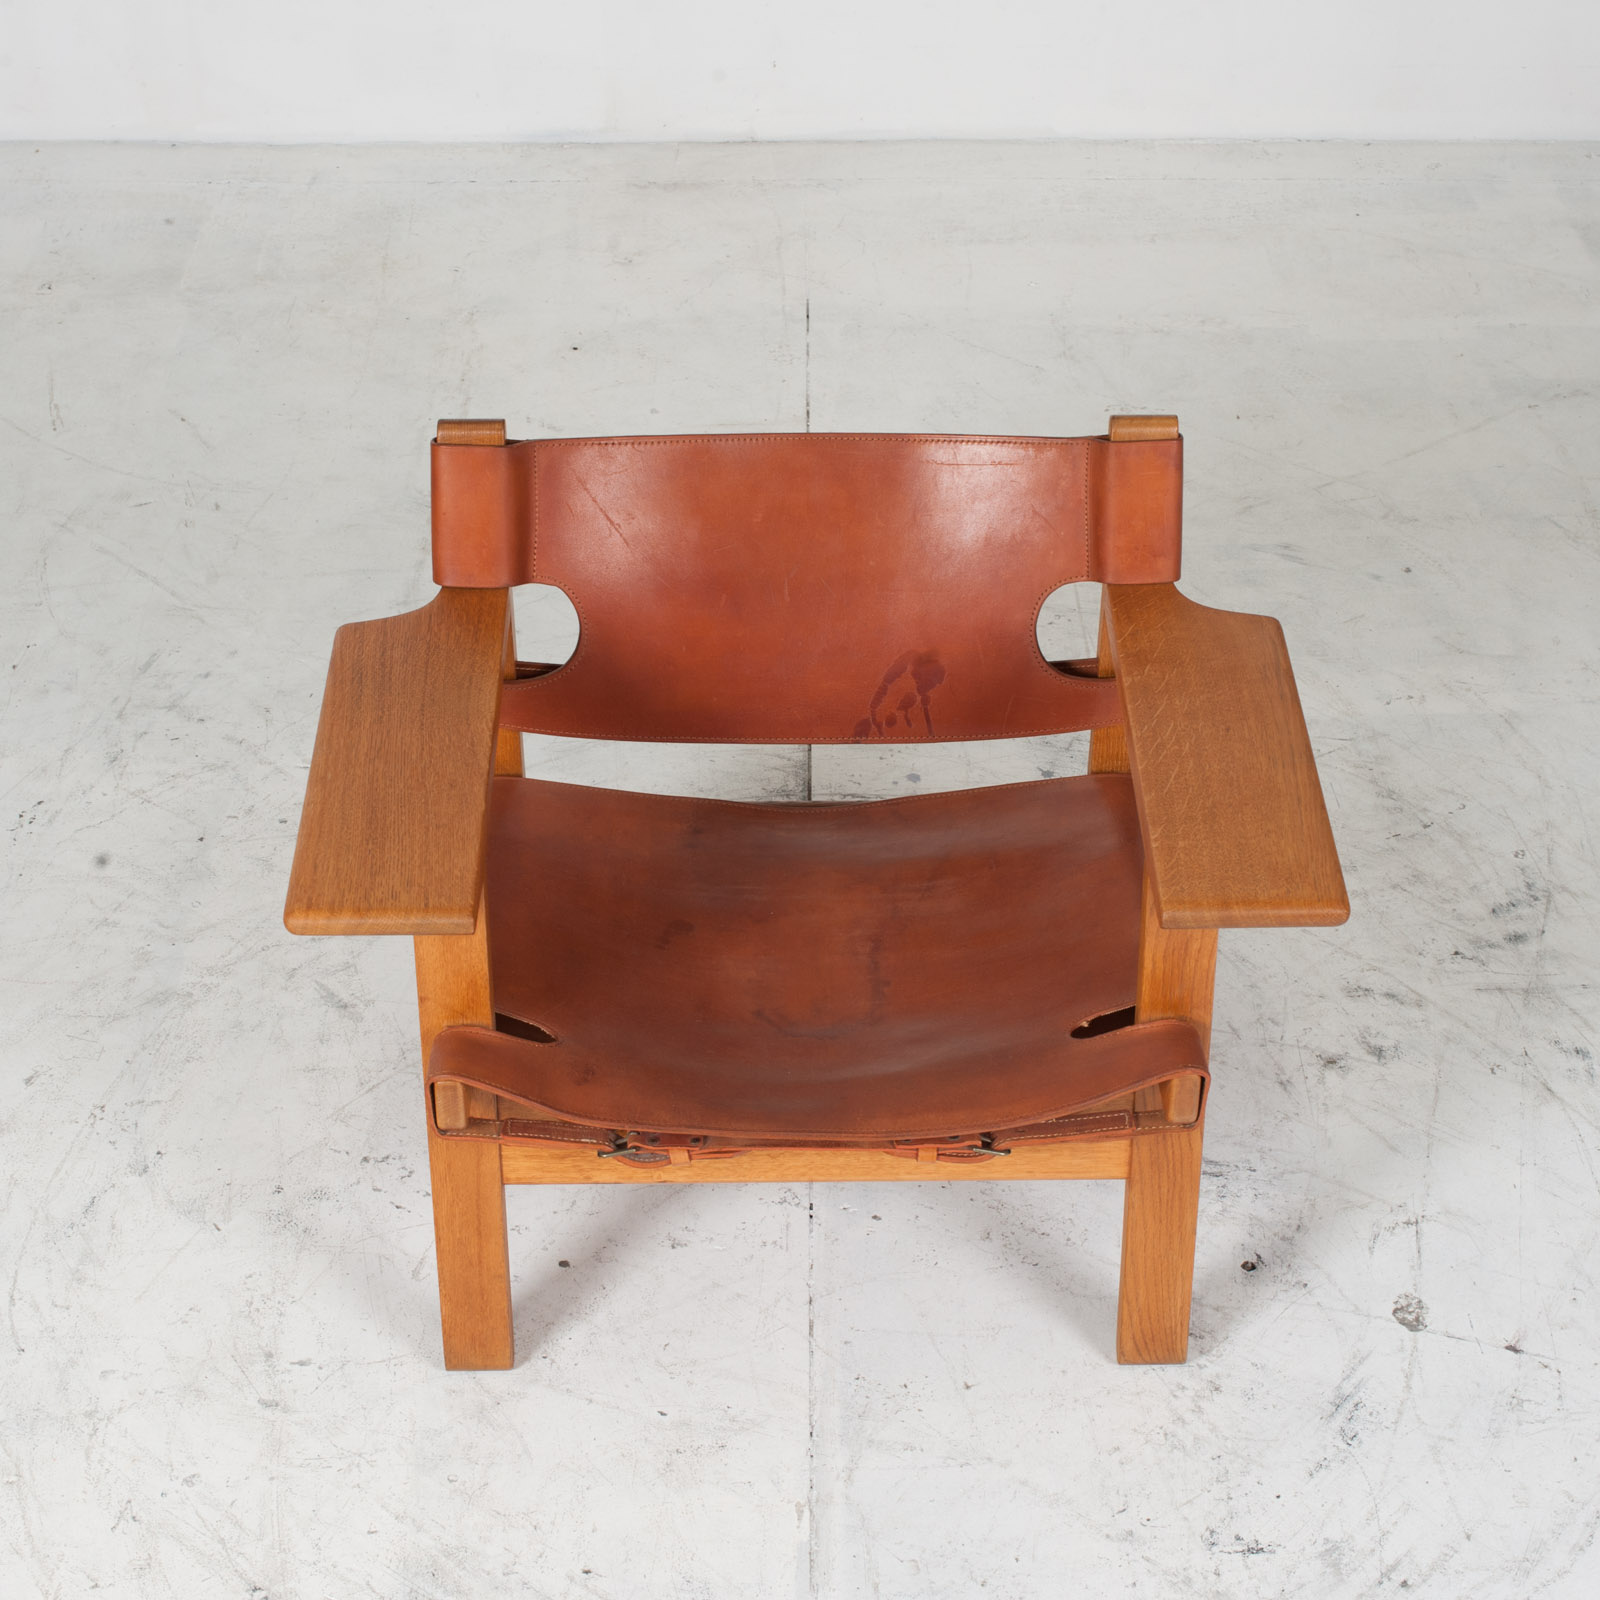 Model 2226 Armchair By Borge Mogensen For Fredericia In Tan Leather 1950s Denmark 003